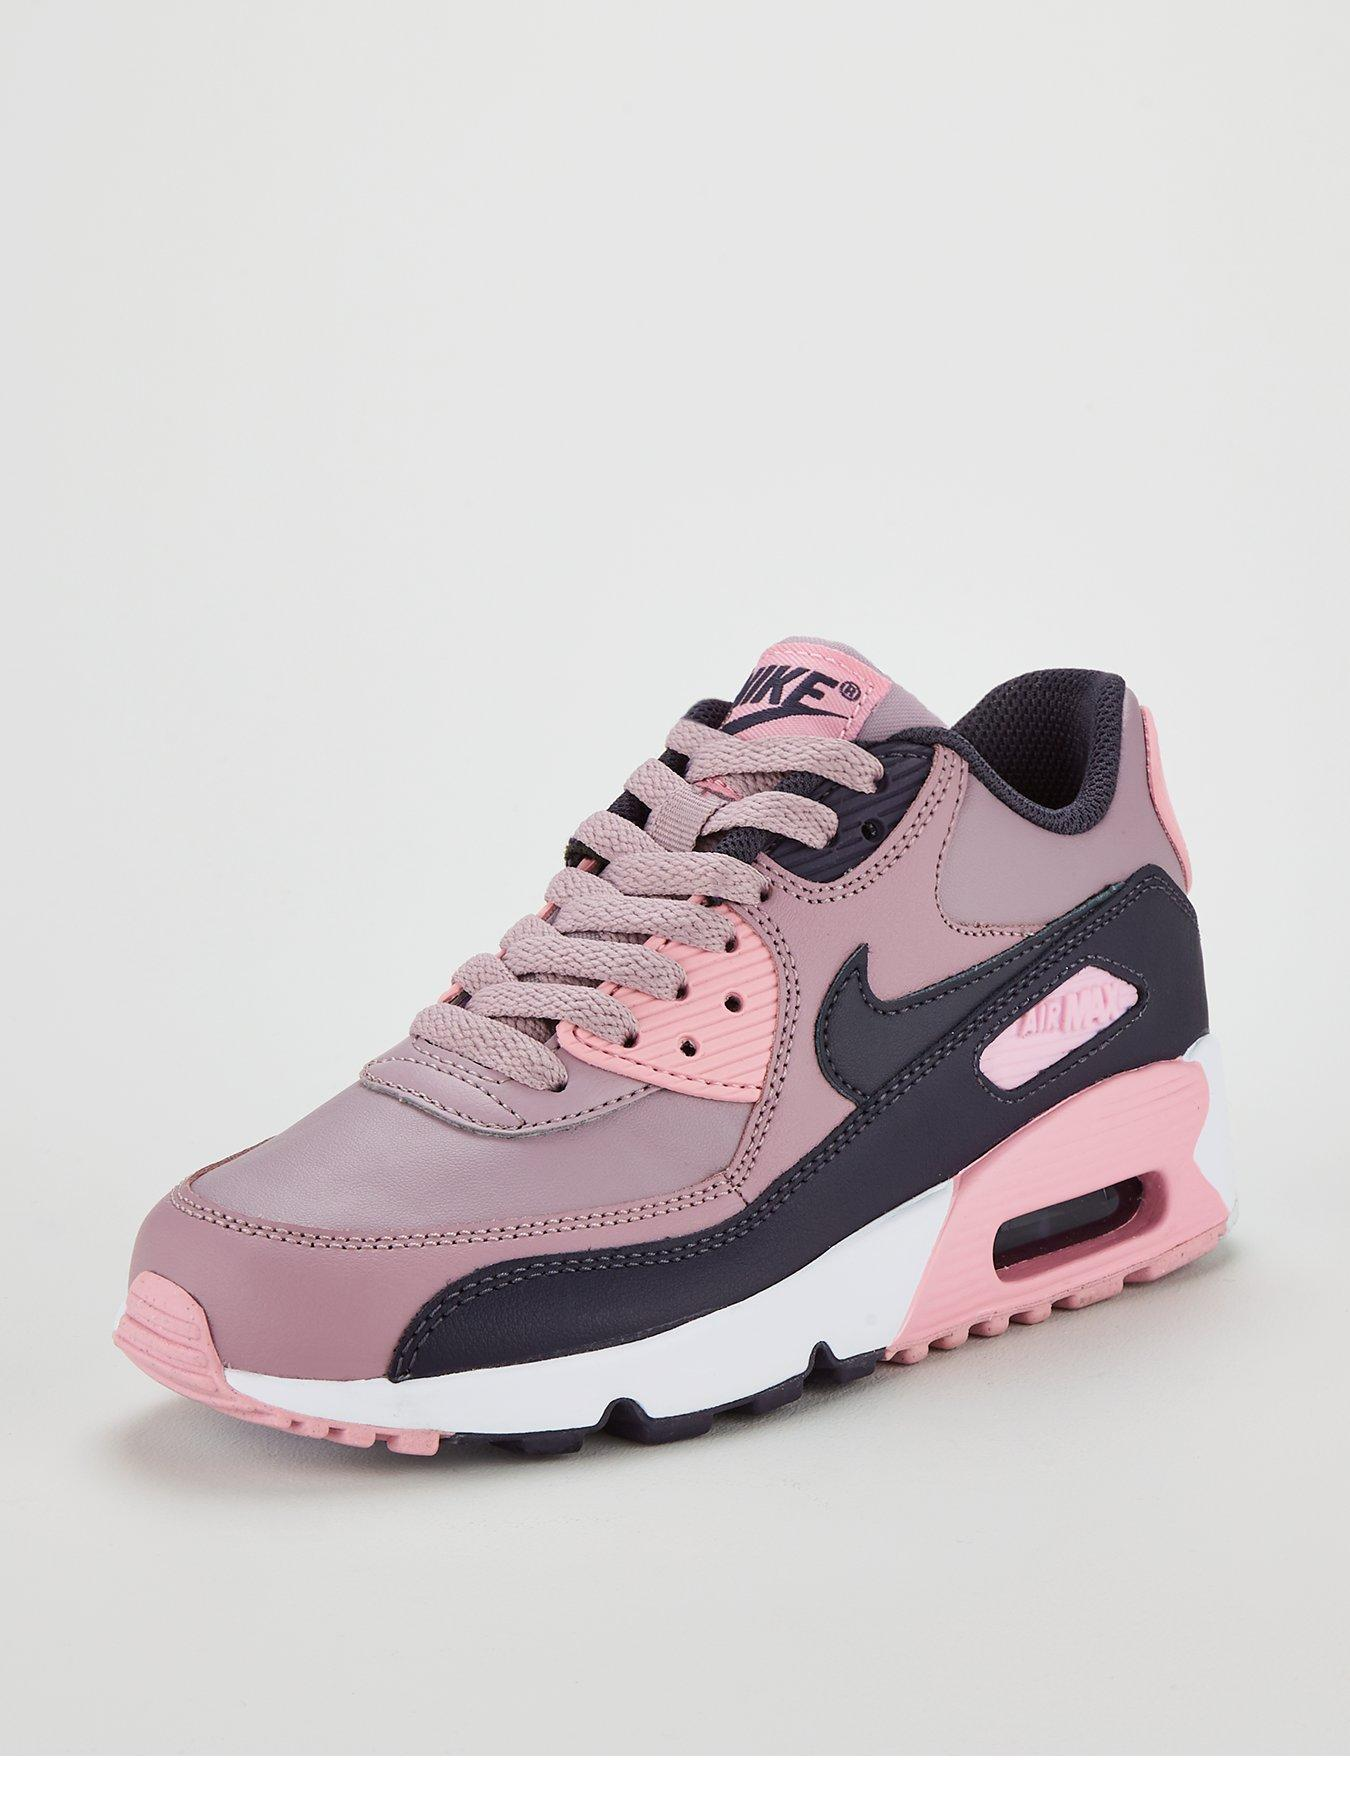 Details about Juniors NIKE AIR MAX 90 LTR Rose Trainers 833376 602